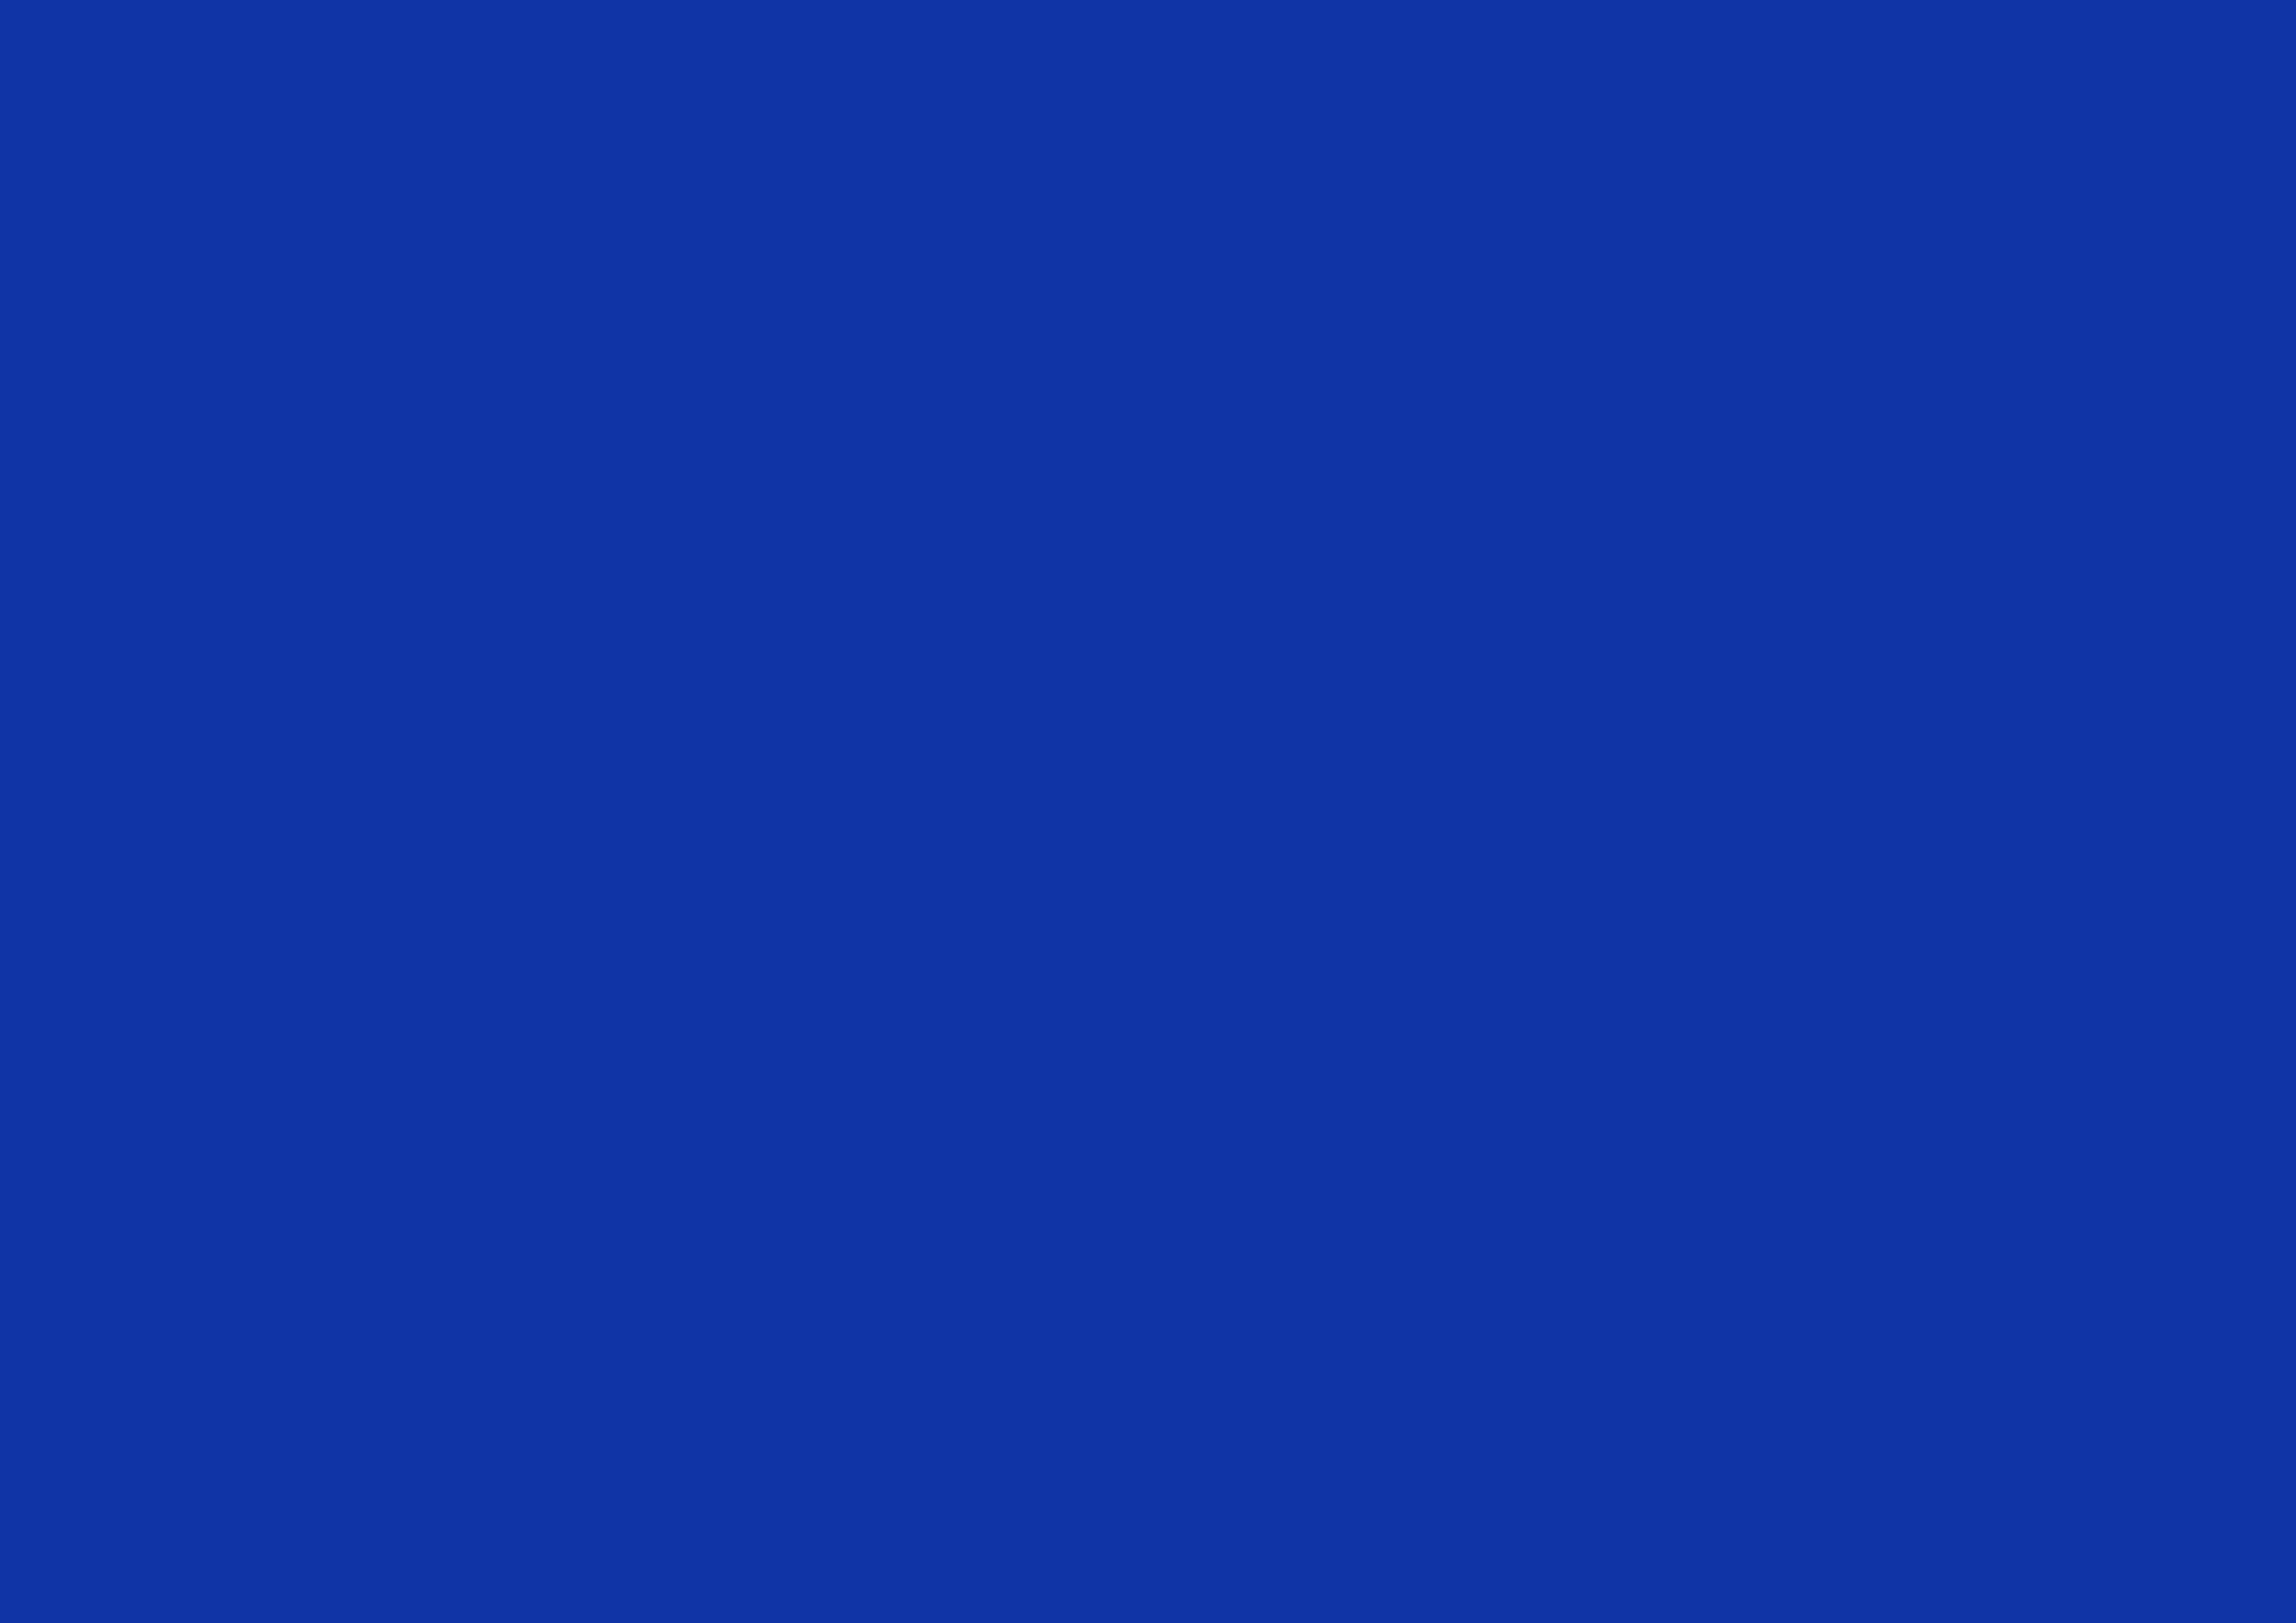 3508x2480 Egyptian Blue Solid Color Background